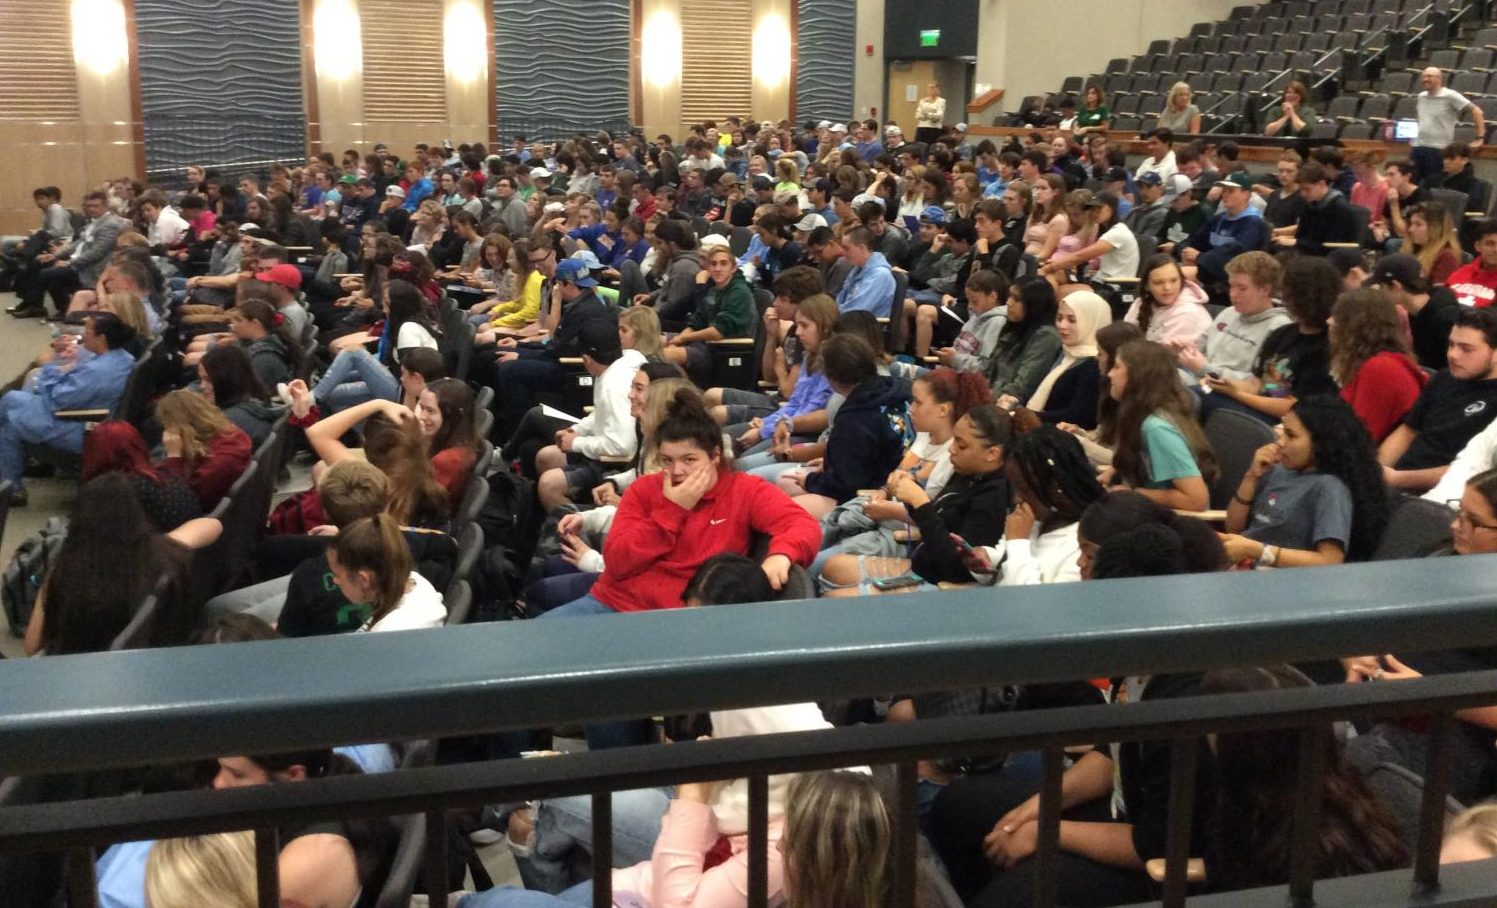 The Abington High School auditorium is full of sophomore to senior students on September 26, 2019. A Career Day was held for students who were interested in learning more about careers.